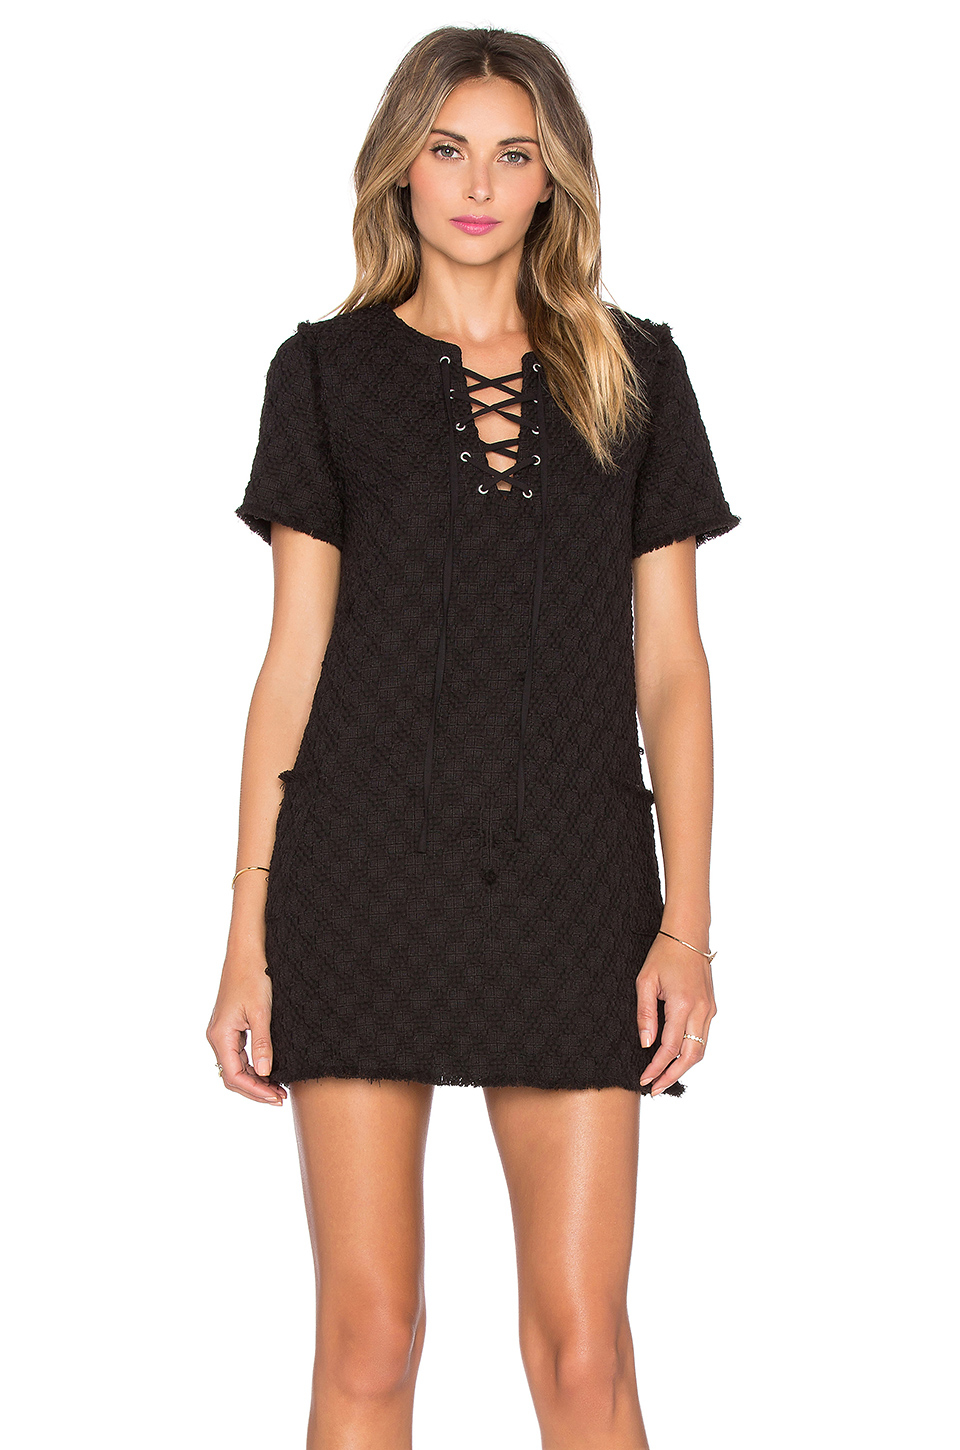 Galerry lace dress up